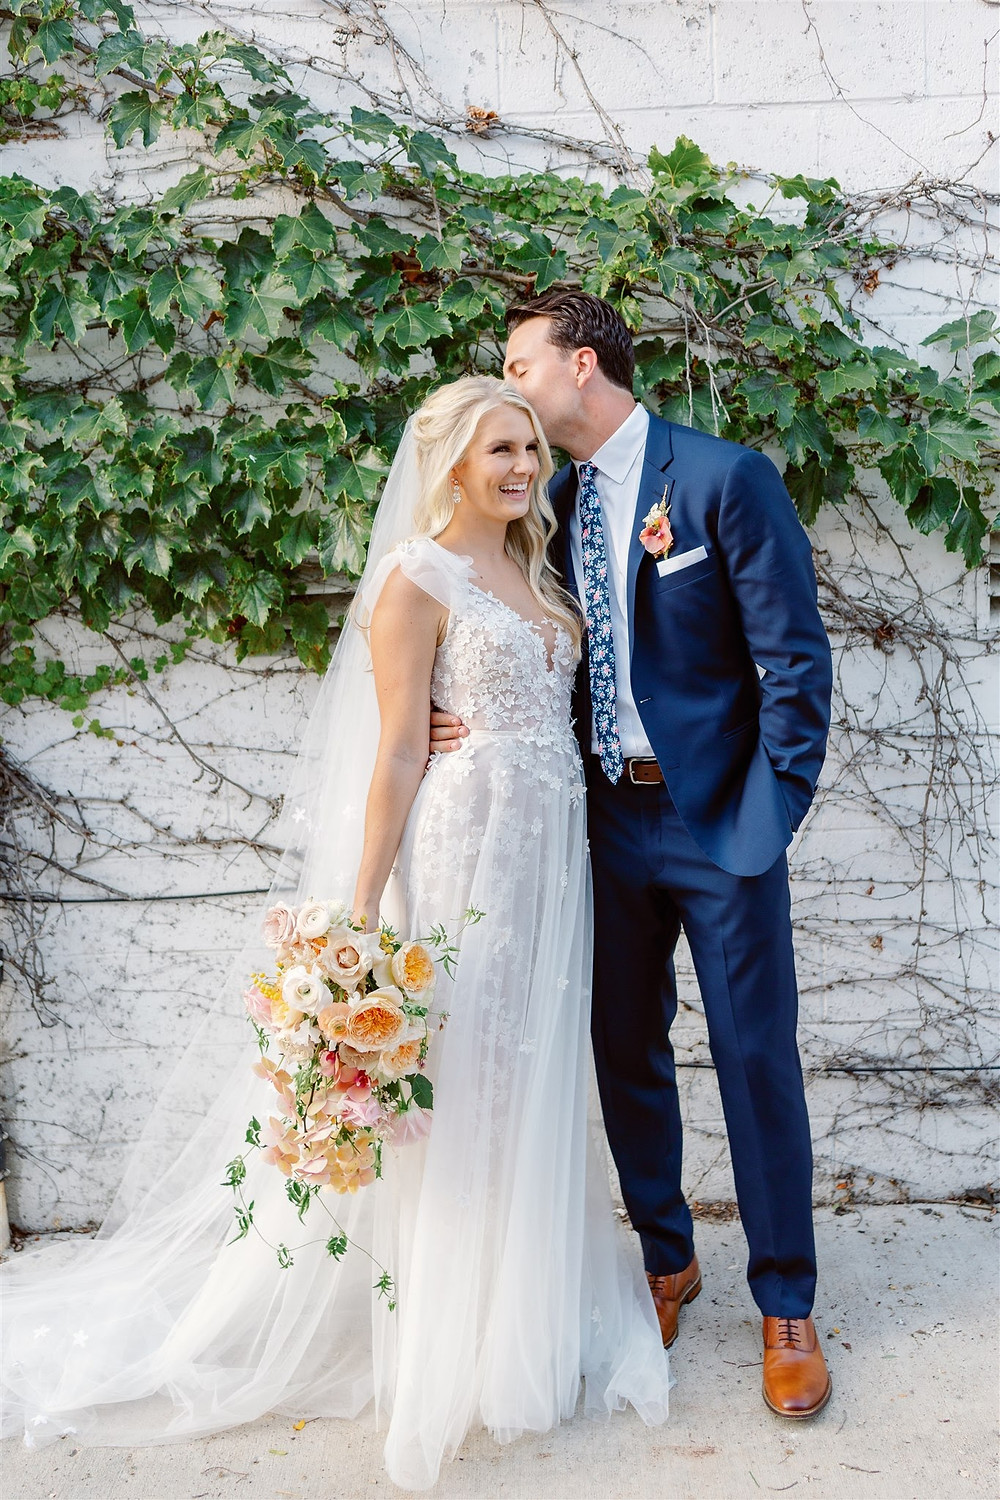 Bride and groom against ivy wall